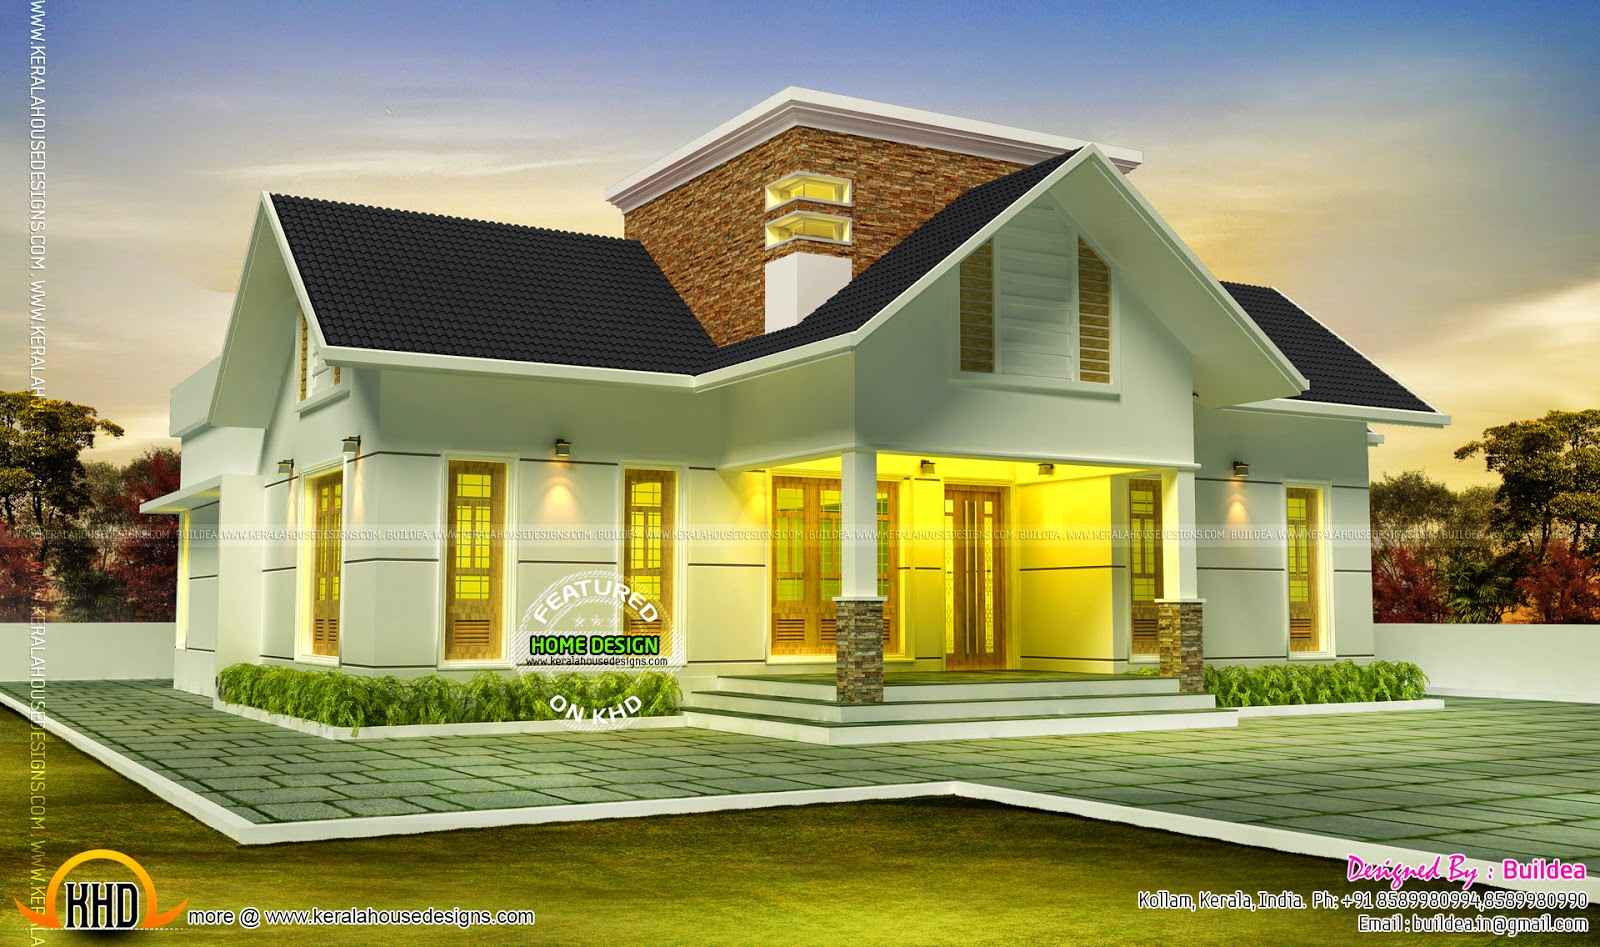 Very beautiful house kerala home design and floor plans for Attractive house designs